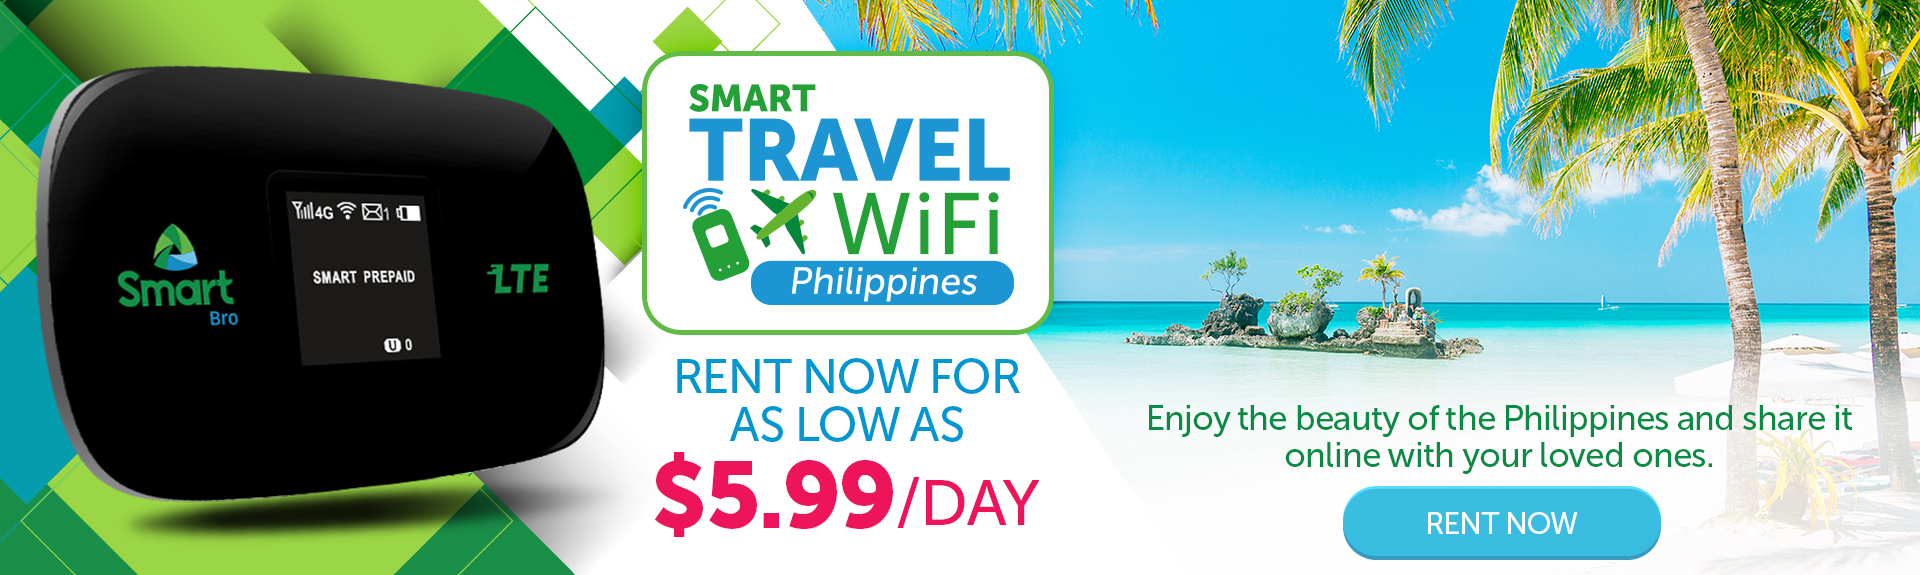 Learn More_Smart Travel WIFI Philippines_Boracay